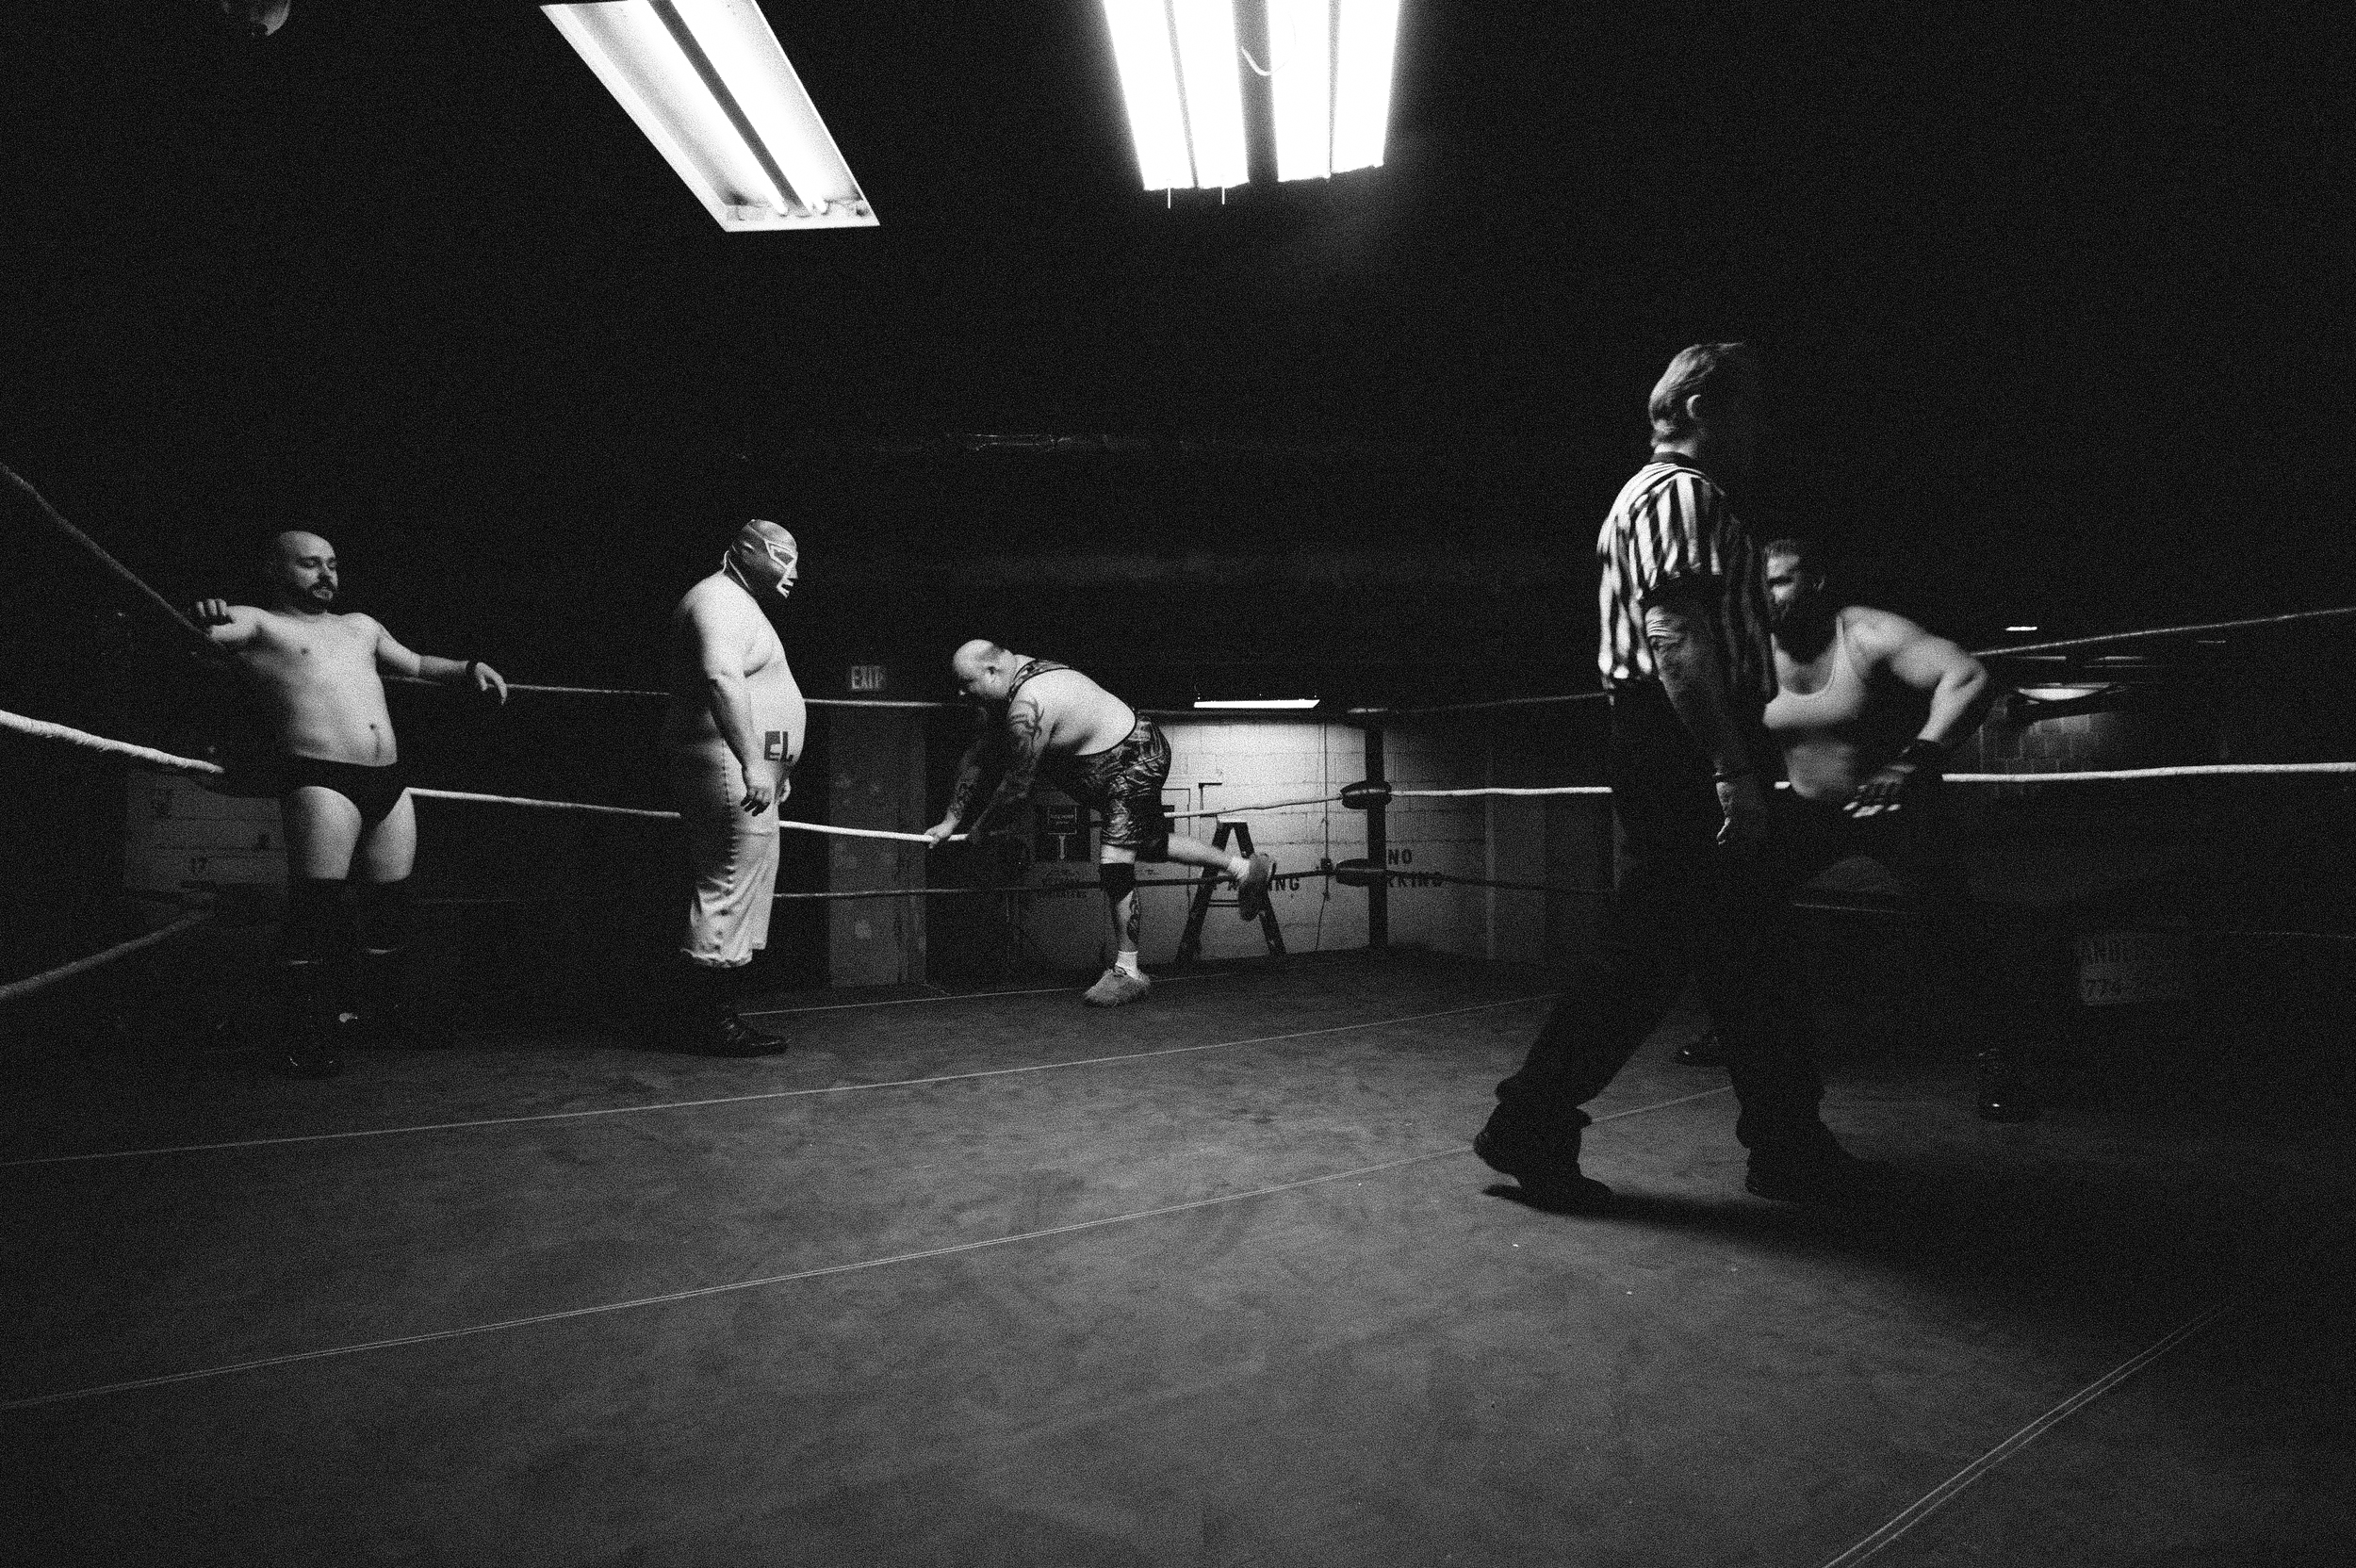 In the ring with the main cast